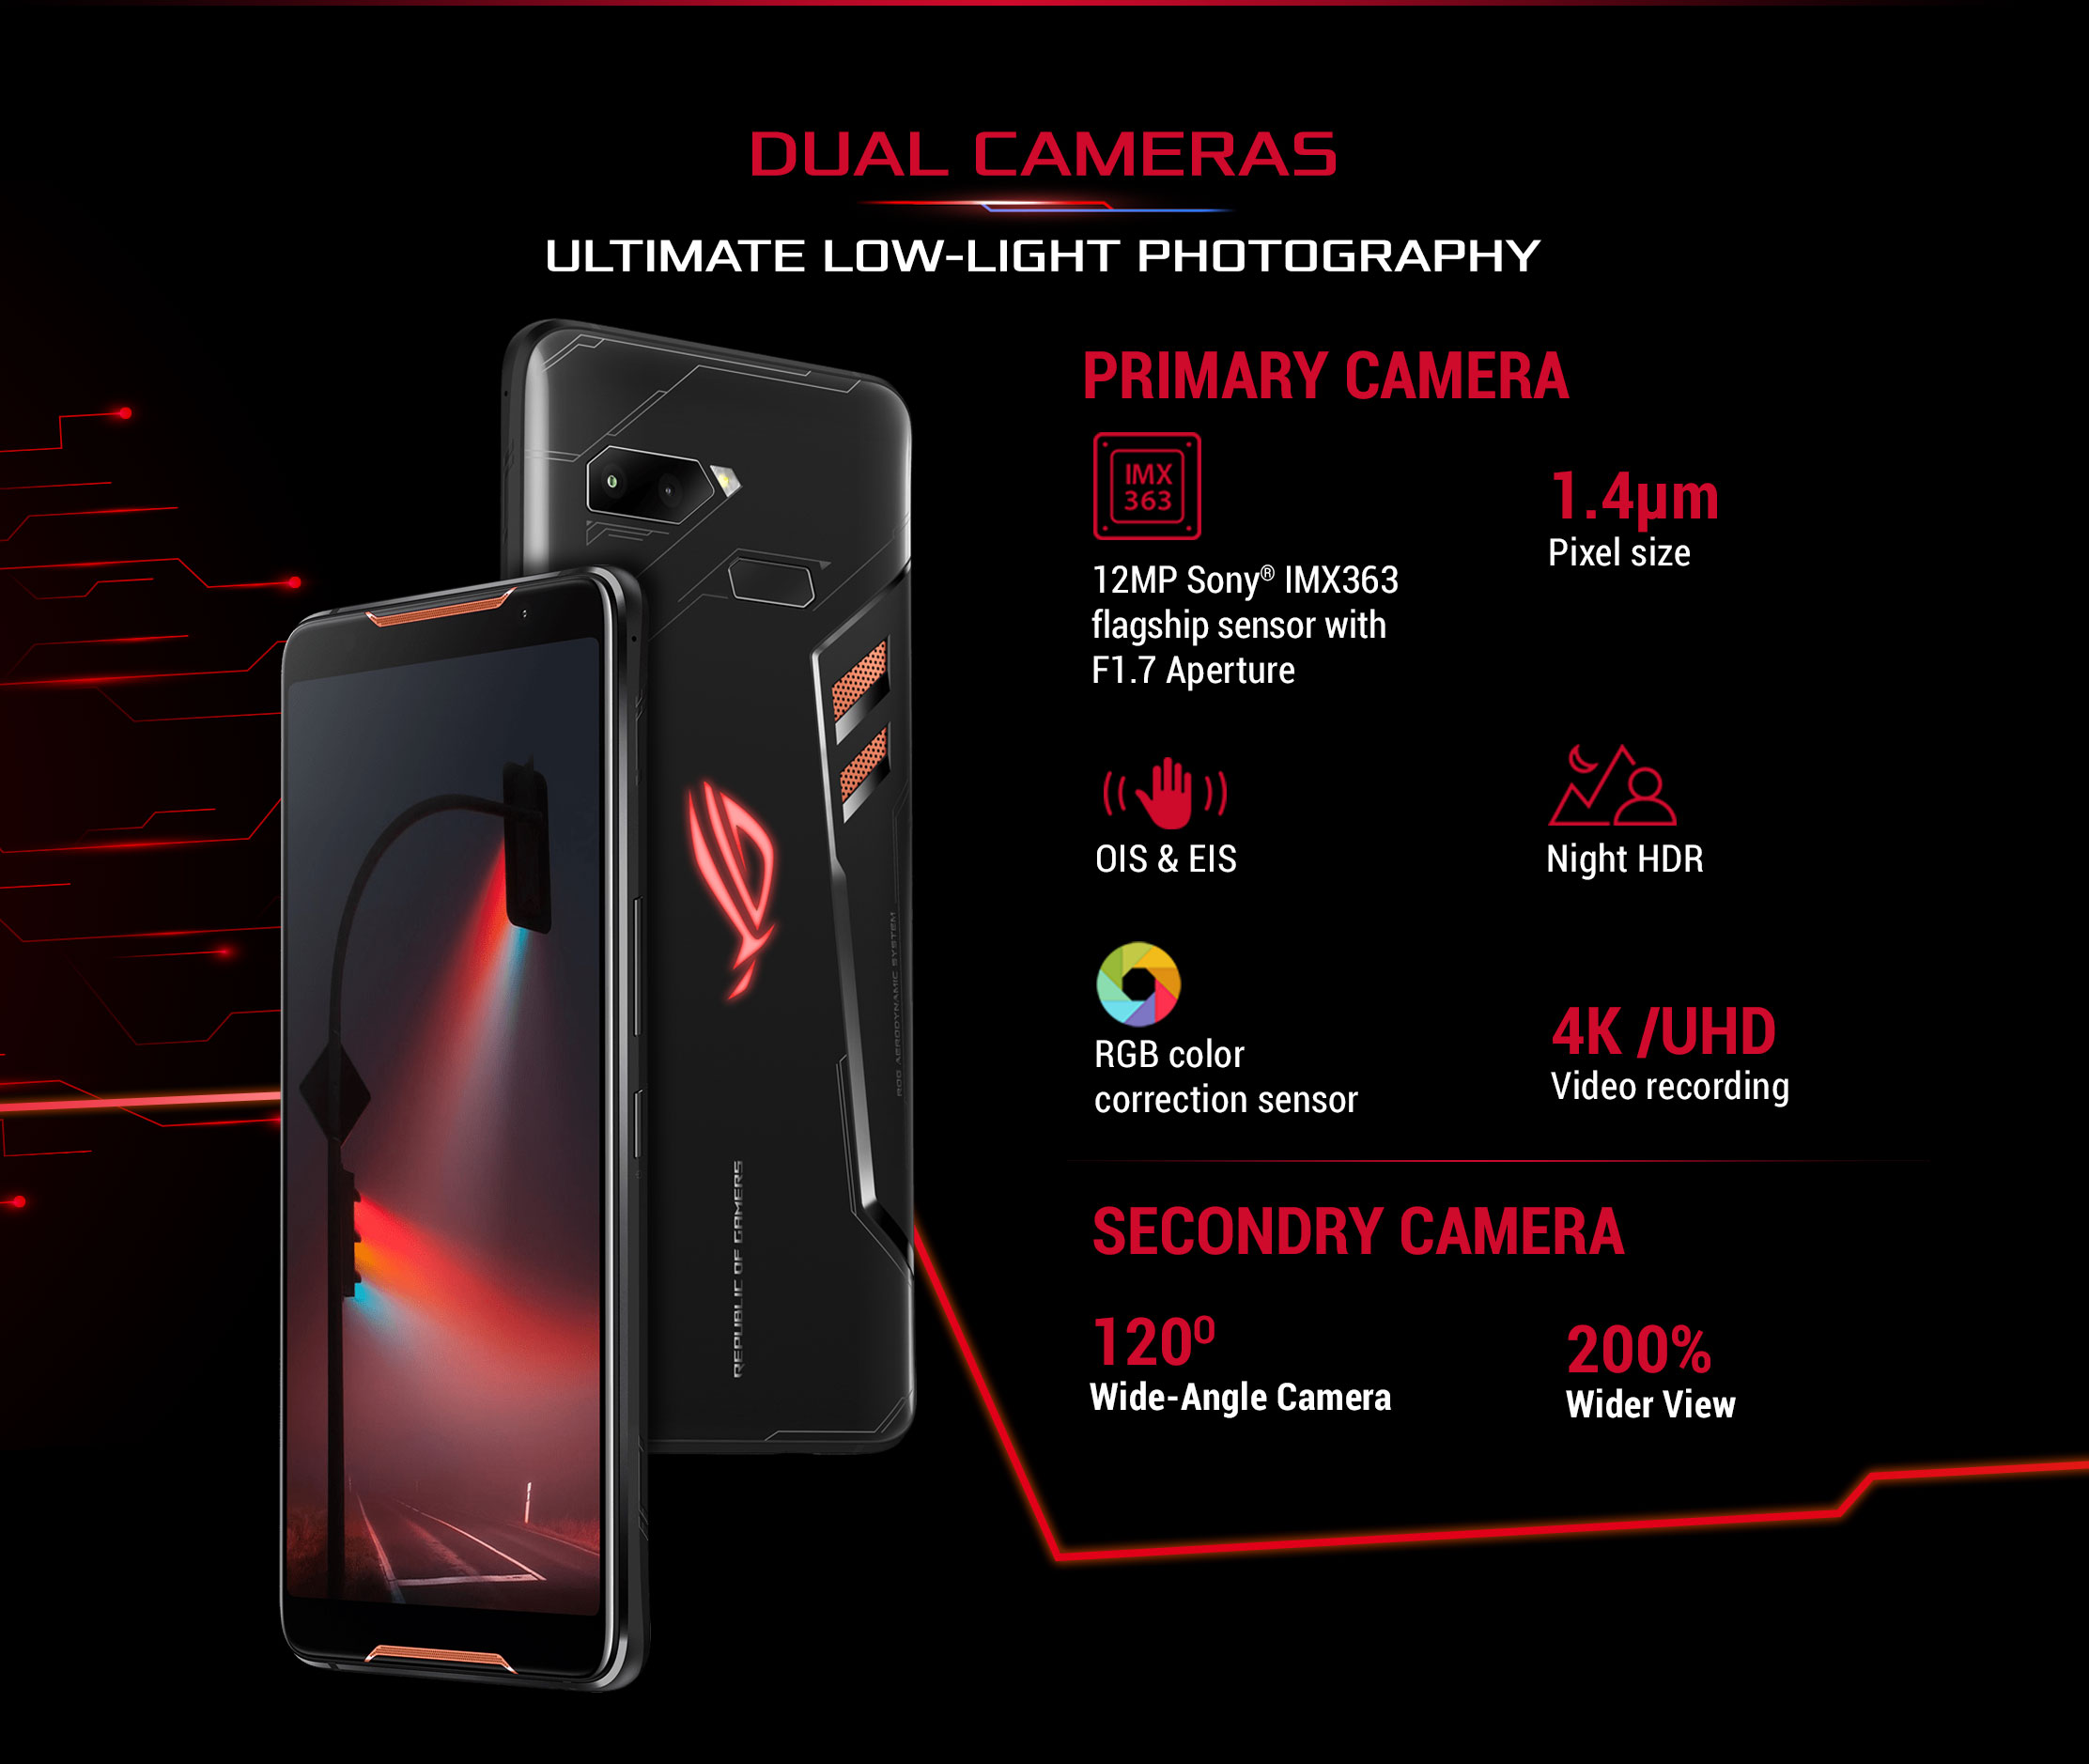 ROG Phone (ZS602KL) | All Phones | ASUS India